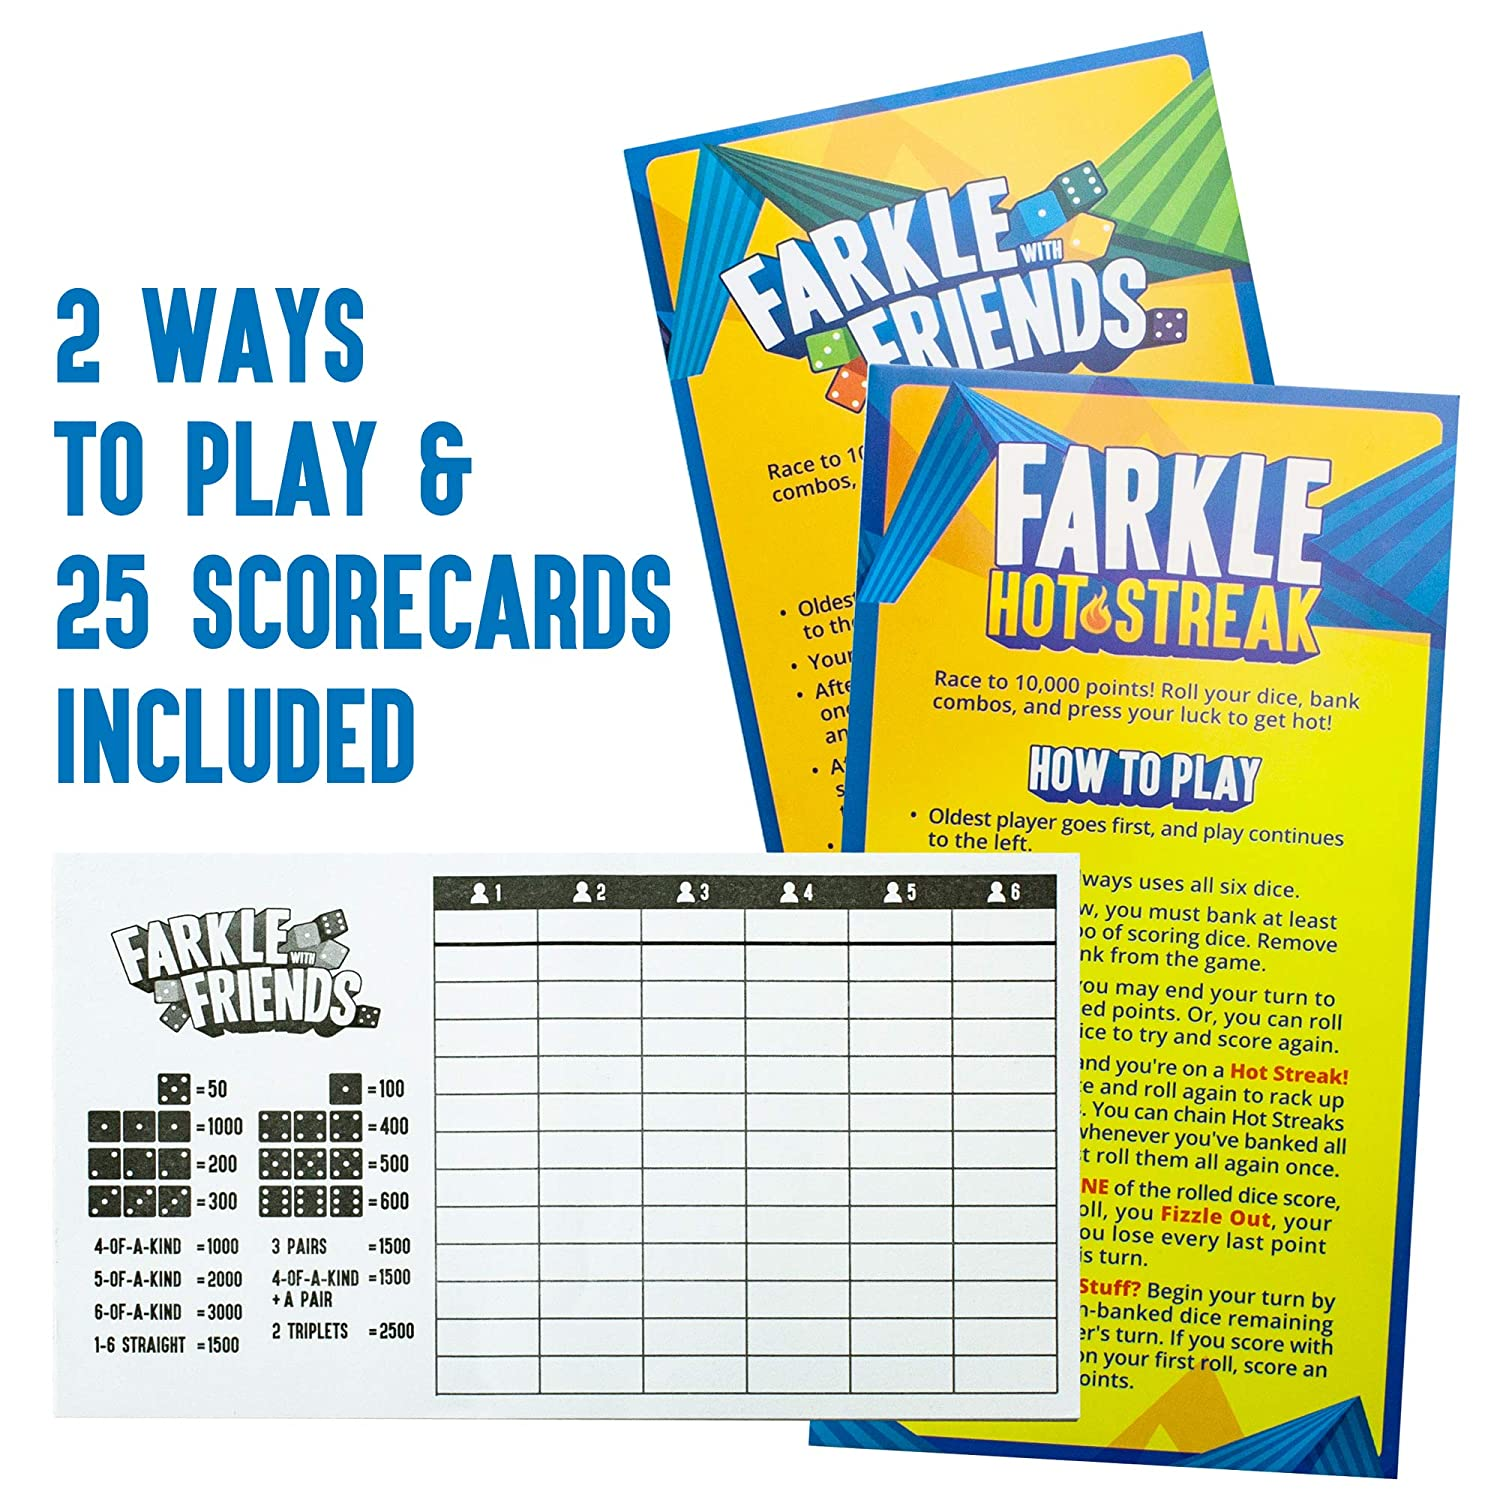 image about Farkle Instructions Printable called Farkle With Close friends: The Clic Cube Activity 6-Participant Occasion Tin Mounted Consists of 36 Cube, 6 Cube Cups, 25 Scorecards High quality Storage Tin Relatives Cube